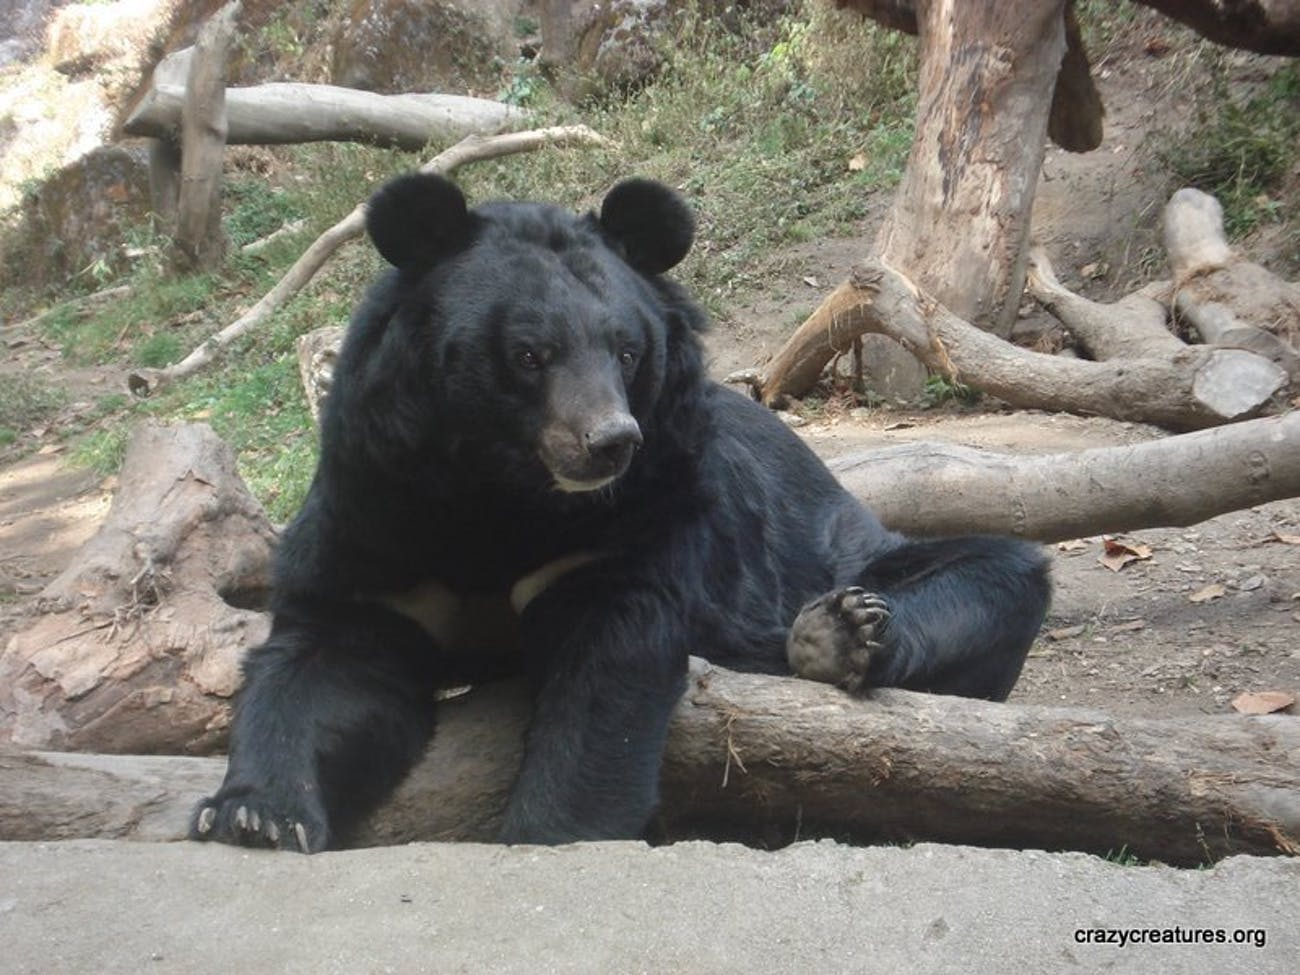 Despite their large size (100-150kg), these Asian (also Himalayan) Black Bears are arboreal, i.e. they like to live in trees. They spend about half their life in trees, with only a few old chubby ones becoming too heavy to climb them! Find out about many different animals at www.crazycreatures.org